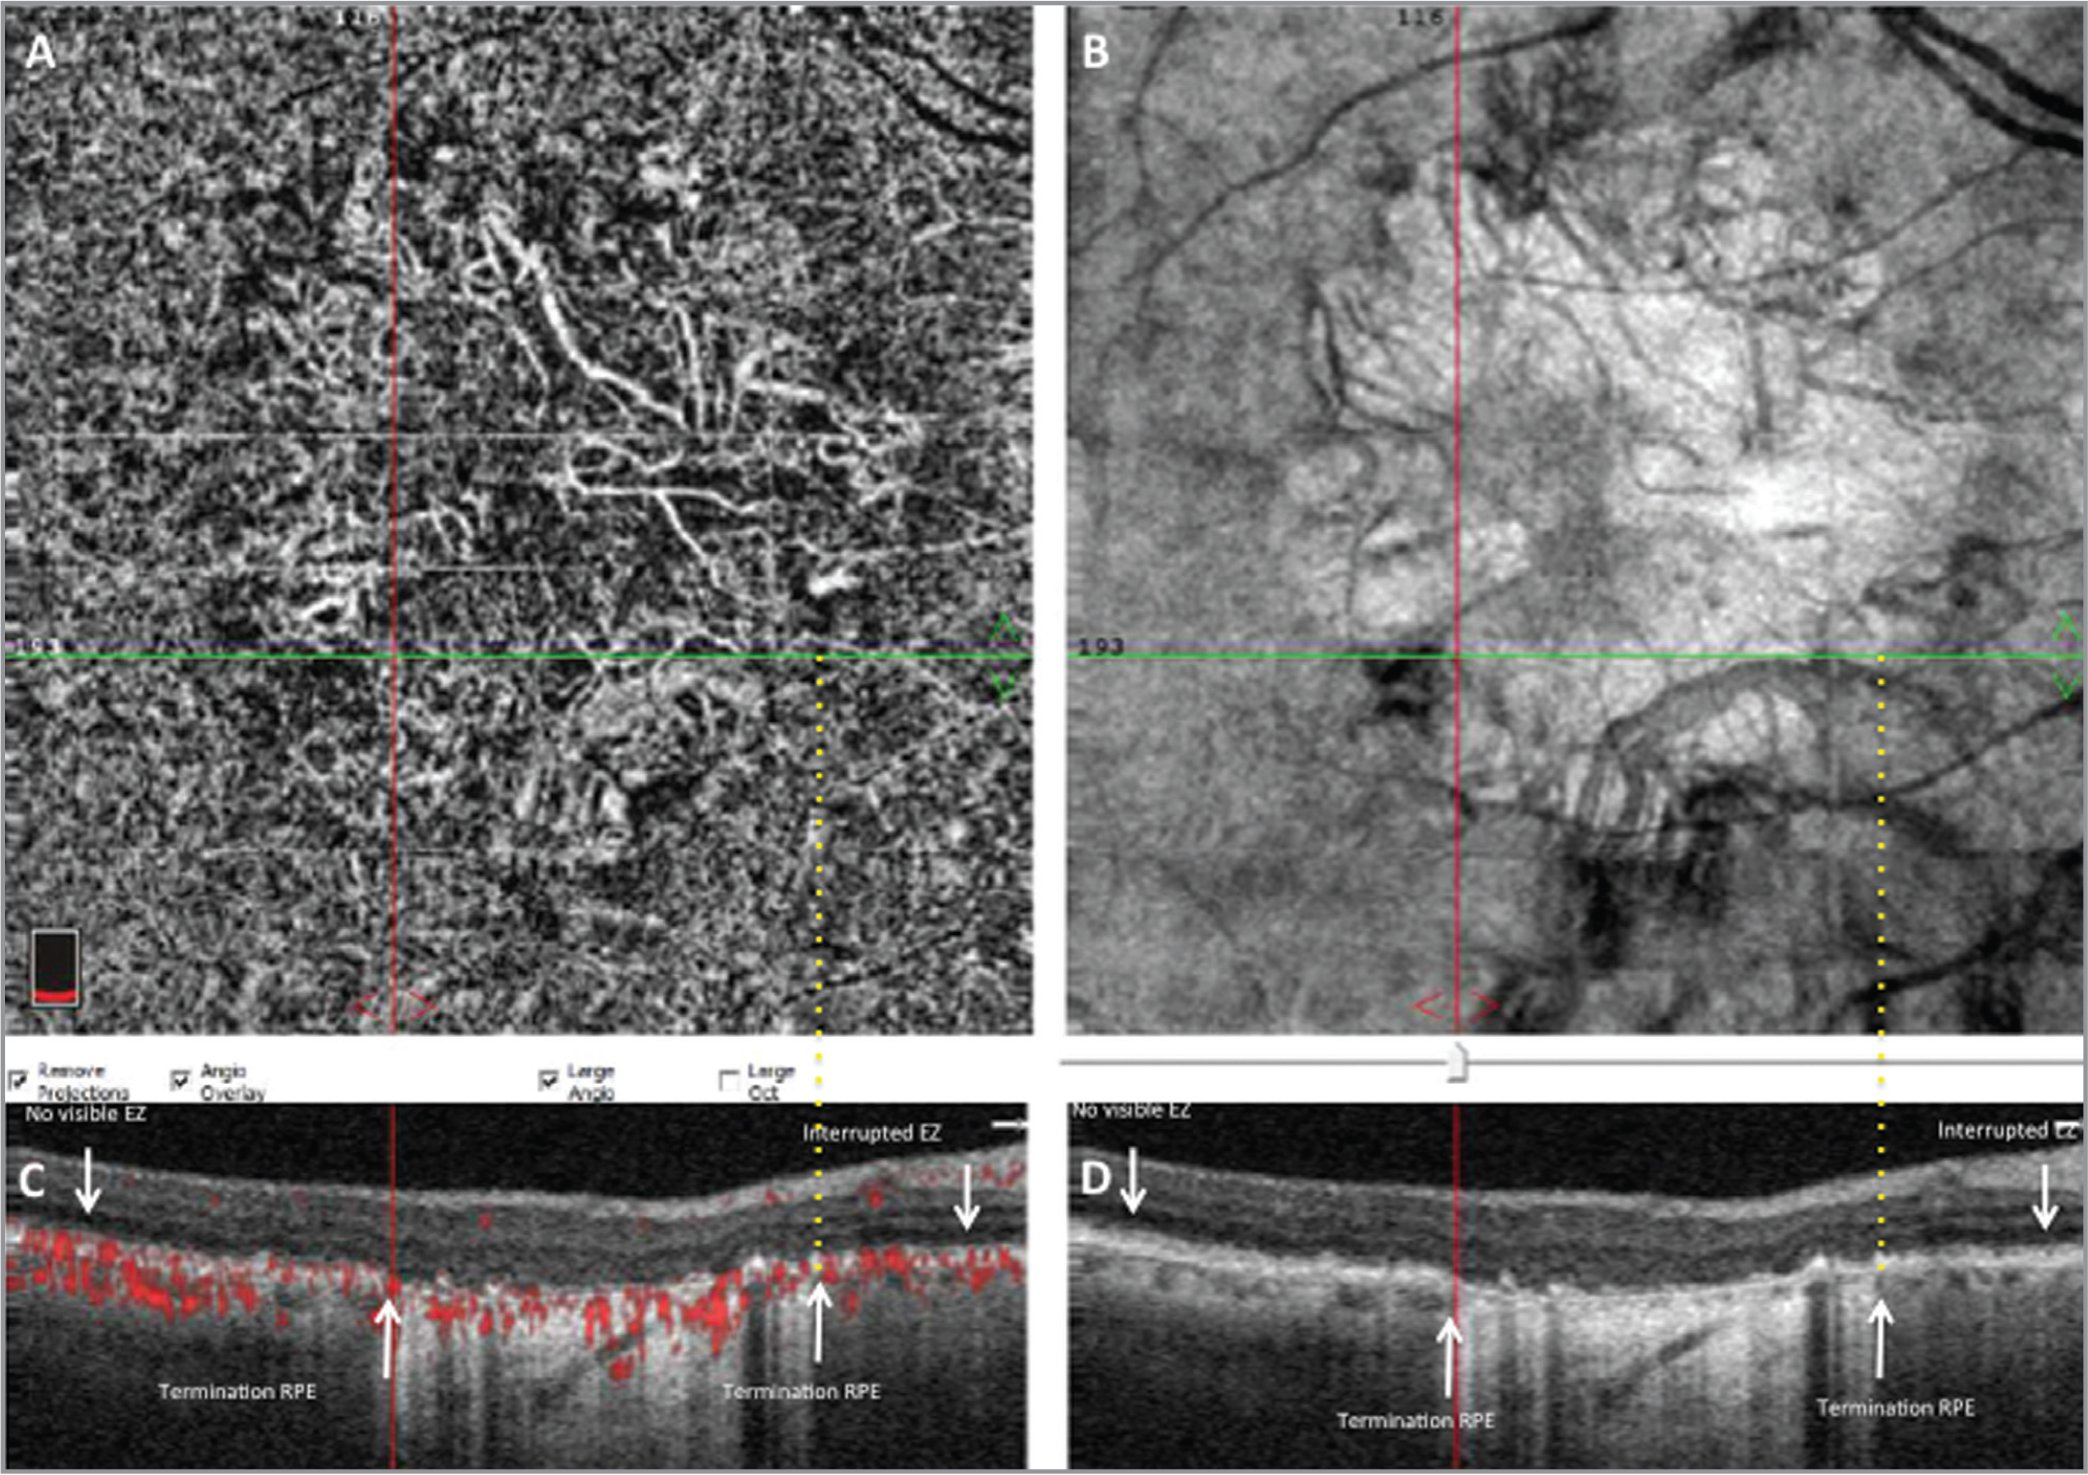 Example of a patient with geographic atrophy (GA). Choriocapillaris (CC) nonperfusion is visible within the margin of GA (complete retinal pigment epithelium (RPE) and outer retinal atrophy). (A) 6 mm × 6 mm optical coherence tomography (OCT) angiography acquisition of the posterior pole. CC segmentation showing the area of CC nonperfusion corresponding to the area of deep choroidal vessels visualization by hypertransmission. (B) En face OCT, same segmentation as A, showing hypertransmission corresponding to GA. The horizontal green line shows the location of B-scans (C, D). (C) Horizontal B-scan showing flow area in red. The white arrows show the termination of the RPE and the interrupted ellipsoid zone. The red line shows the temporal margin of RPE atrophy, and the yellow dotted line shows the nasal margin of RPE atrophy. (D) Horizontal B-scan, same location as C.